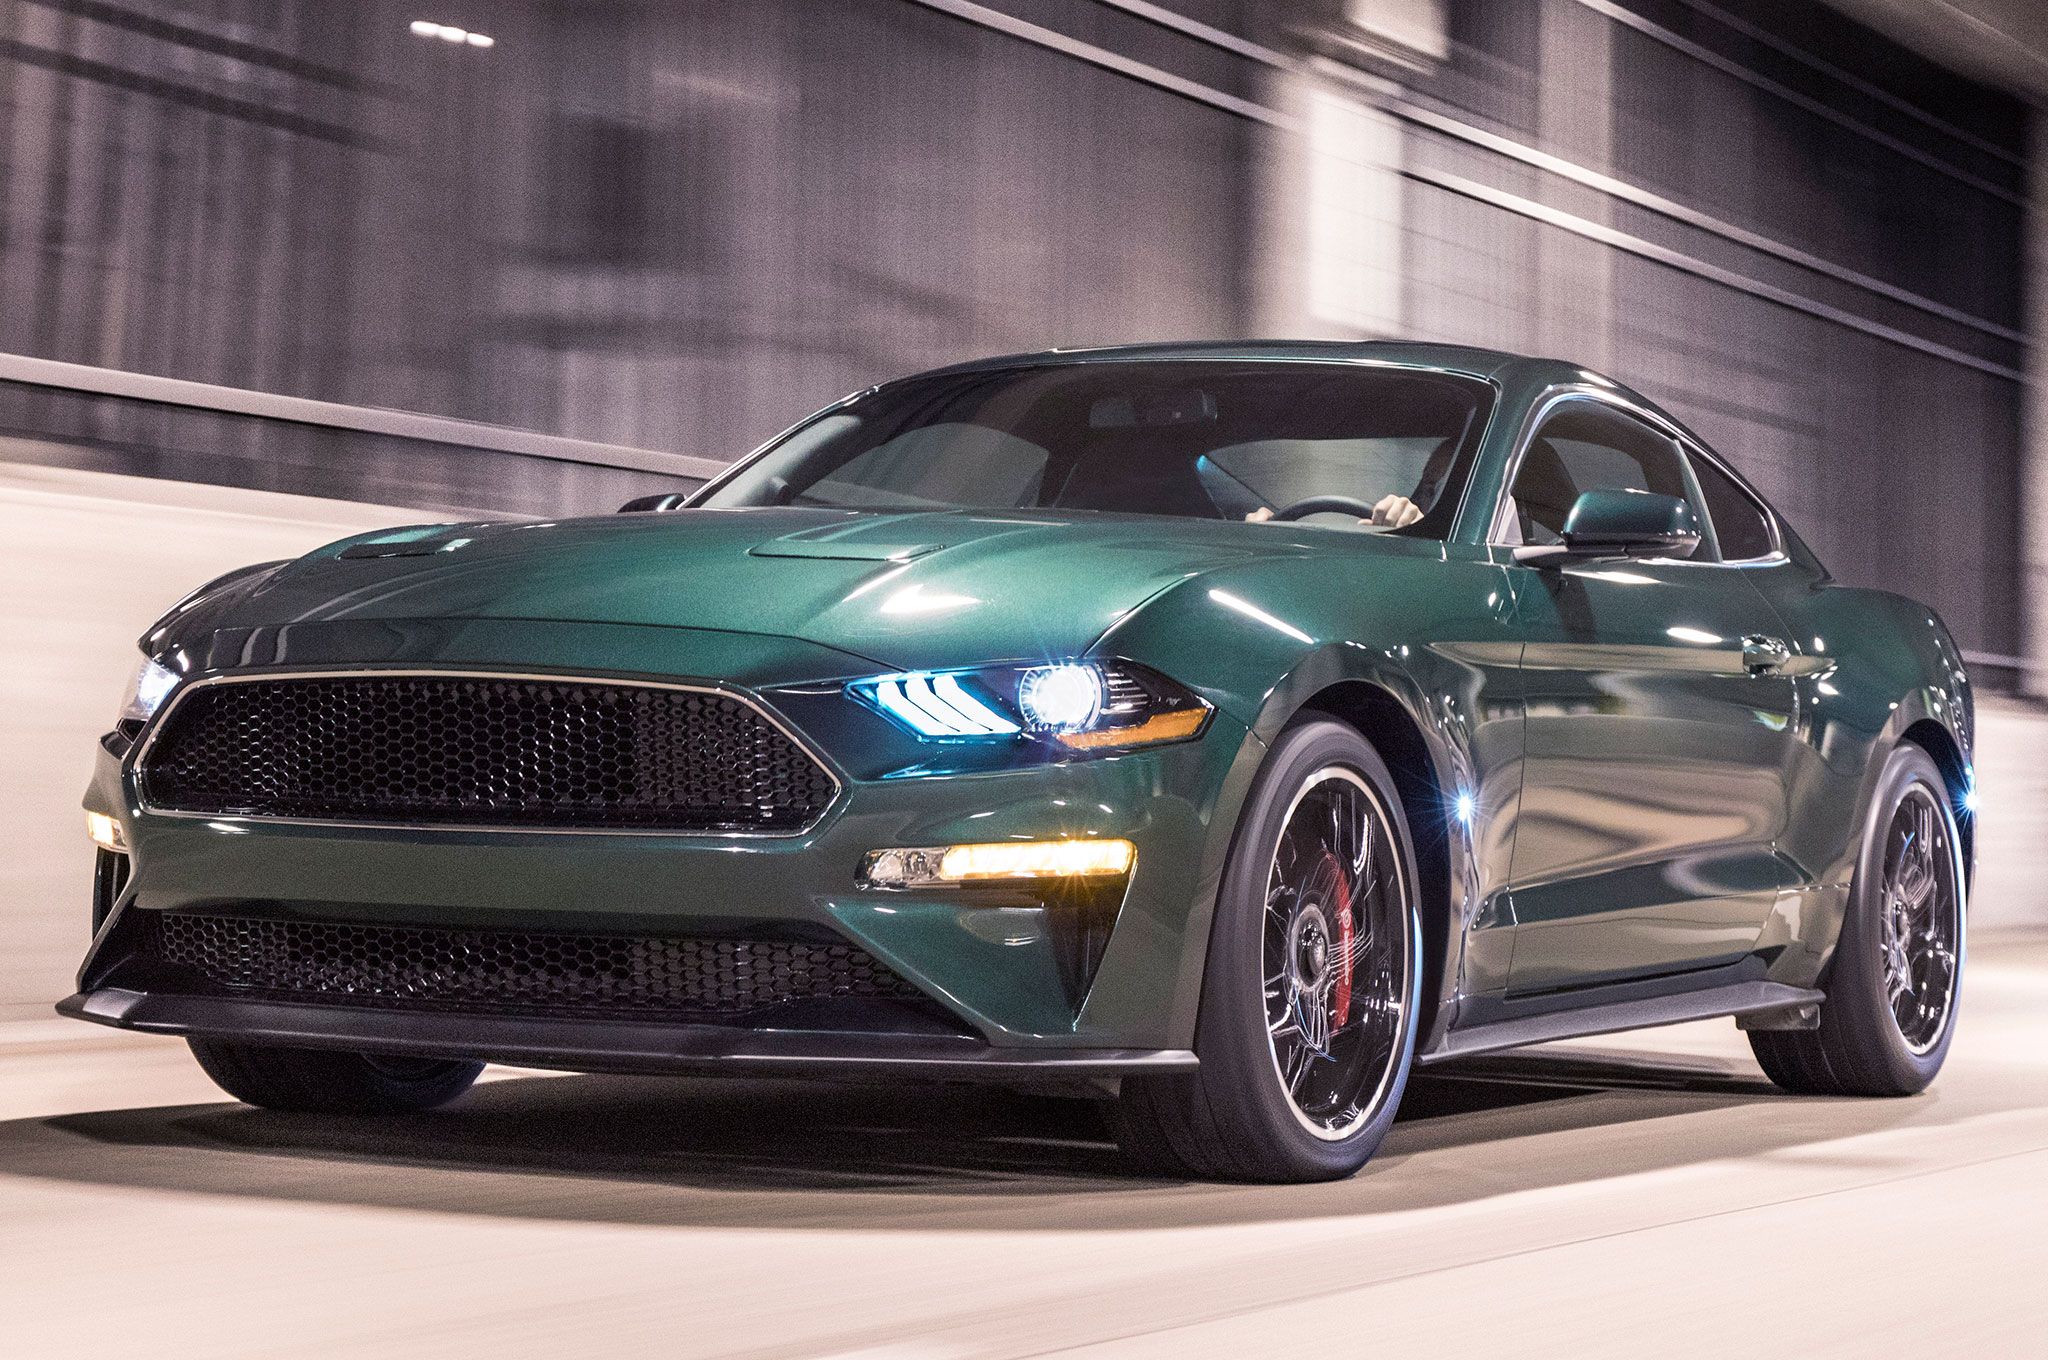 2019 ford mustang bullitt gets 47 495 price tag. Black Bedroom Furniture Sets. Home Design Ideas